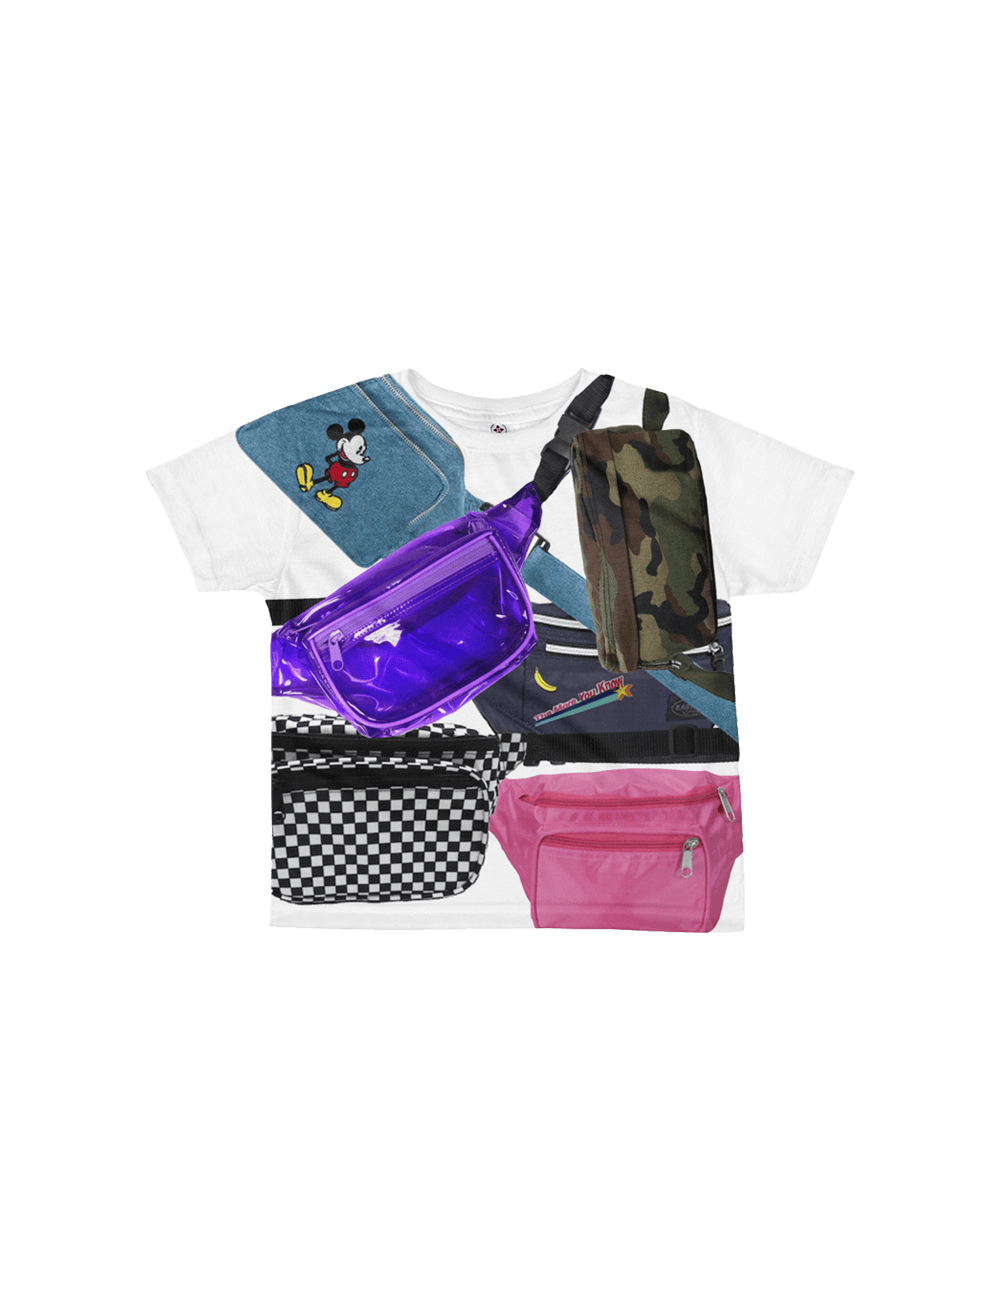 Fanny Pack Heaven Kids Tee